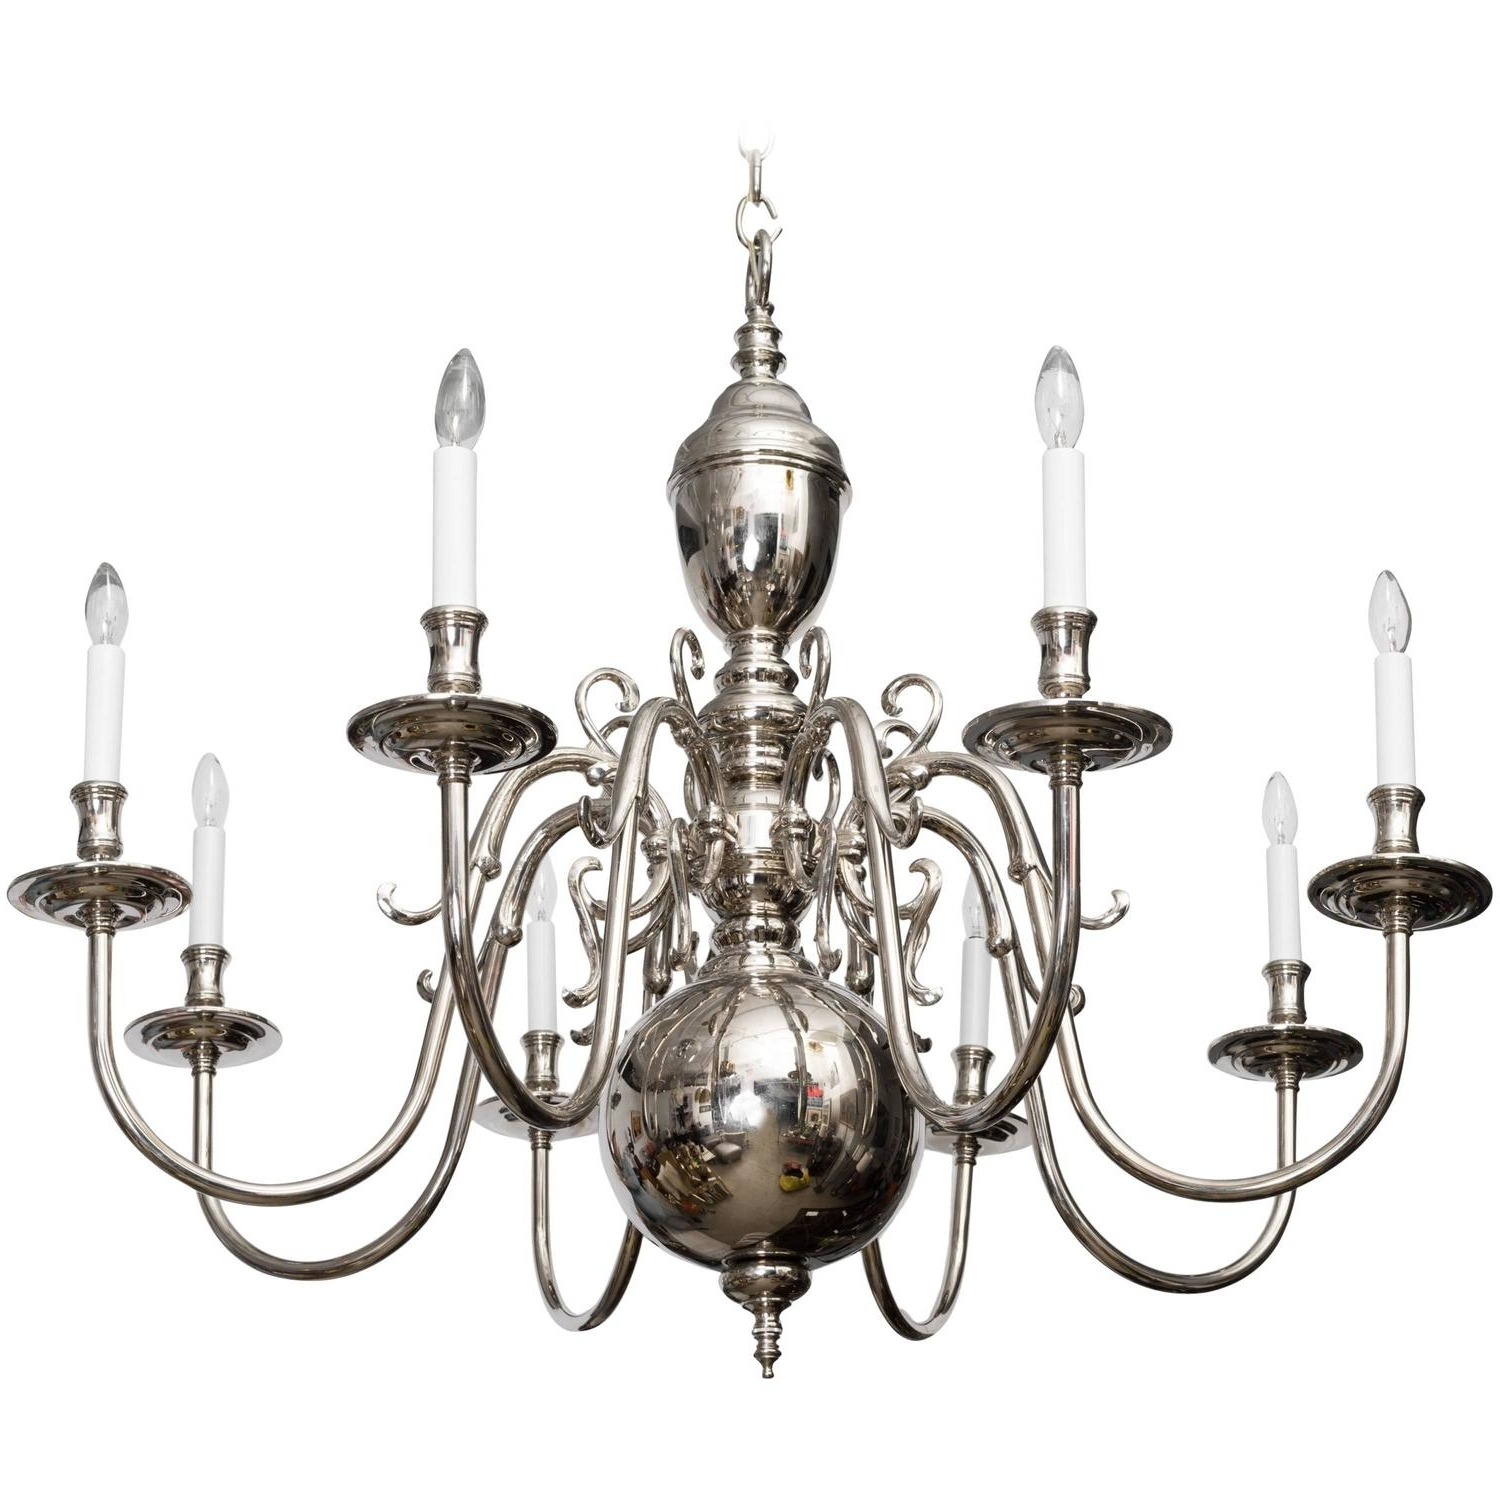 Georgian Chandeliers Throughout Most Recent Grand Scale Georgian Style Chandelier (Gallery 14 of 20)